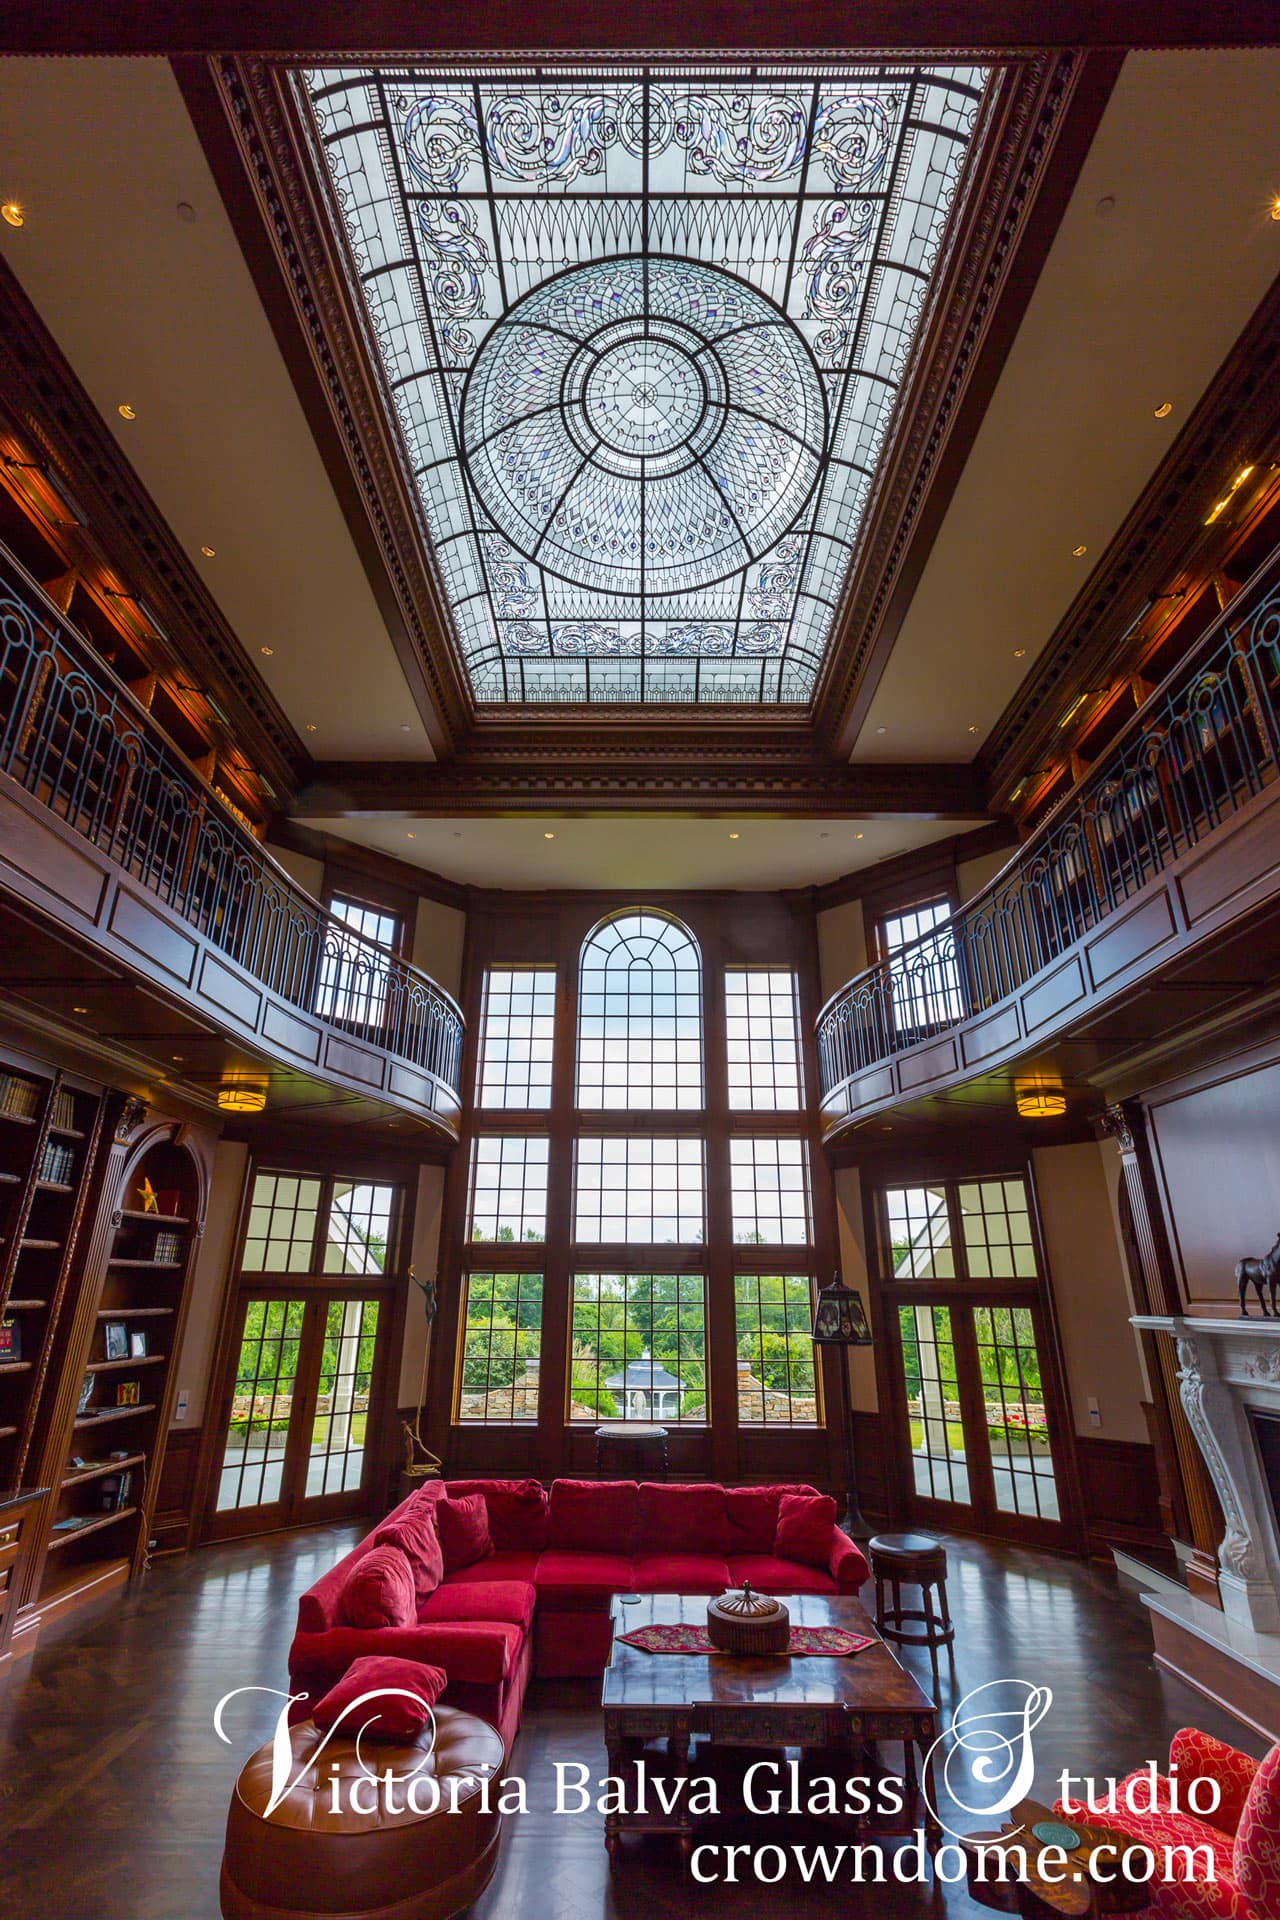 Stained leaded glass dome New Haven for a luxury custom built residence in Connecticut. Acid etched glass, hand beveled colored glass, crystal diamond jewels, complex frame structure, delicate elusive colors make this stained leaded glass dome one of the most impressive projects in North America